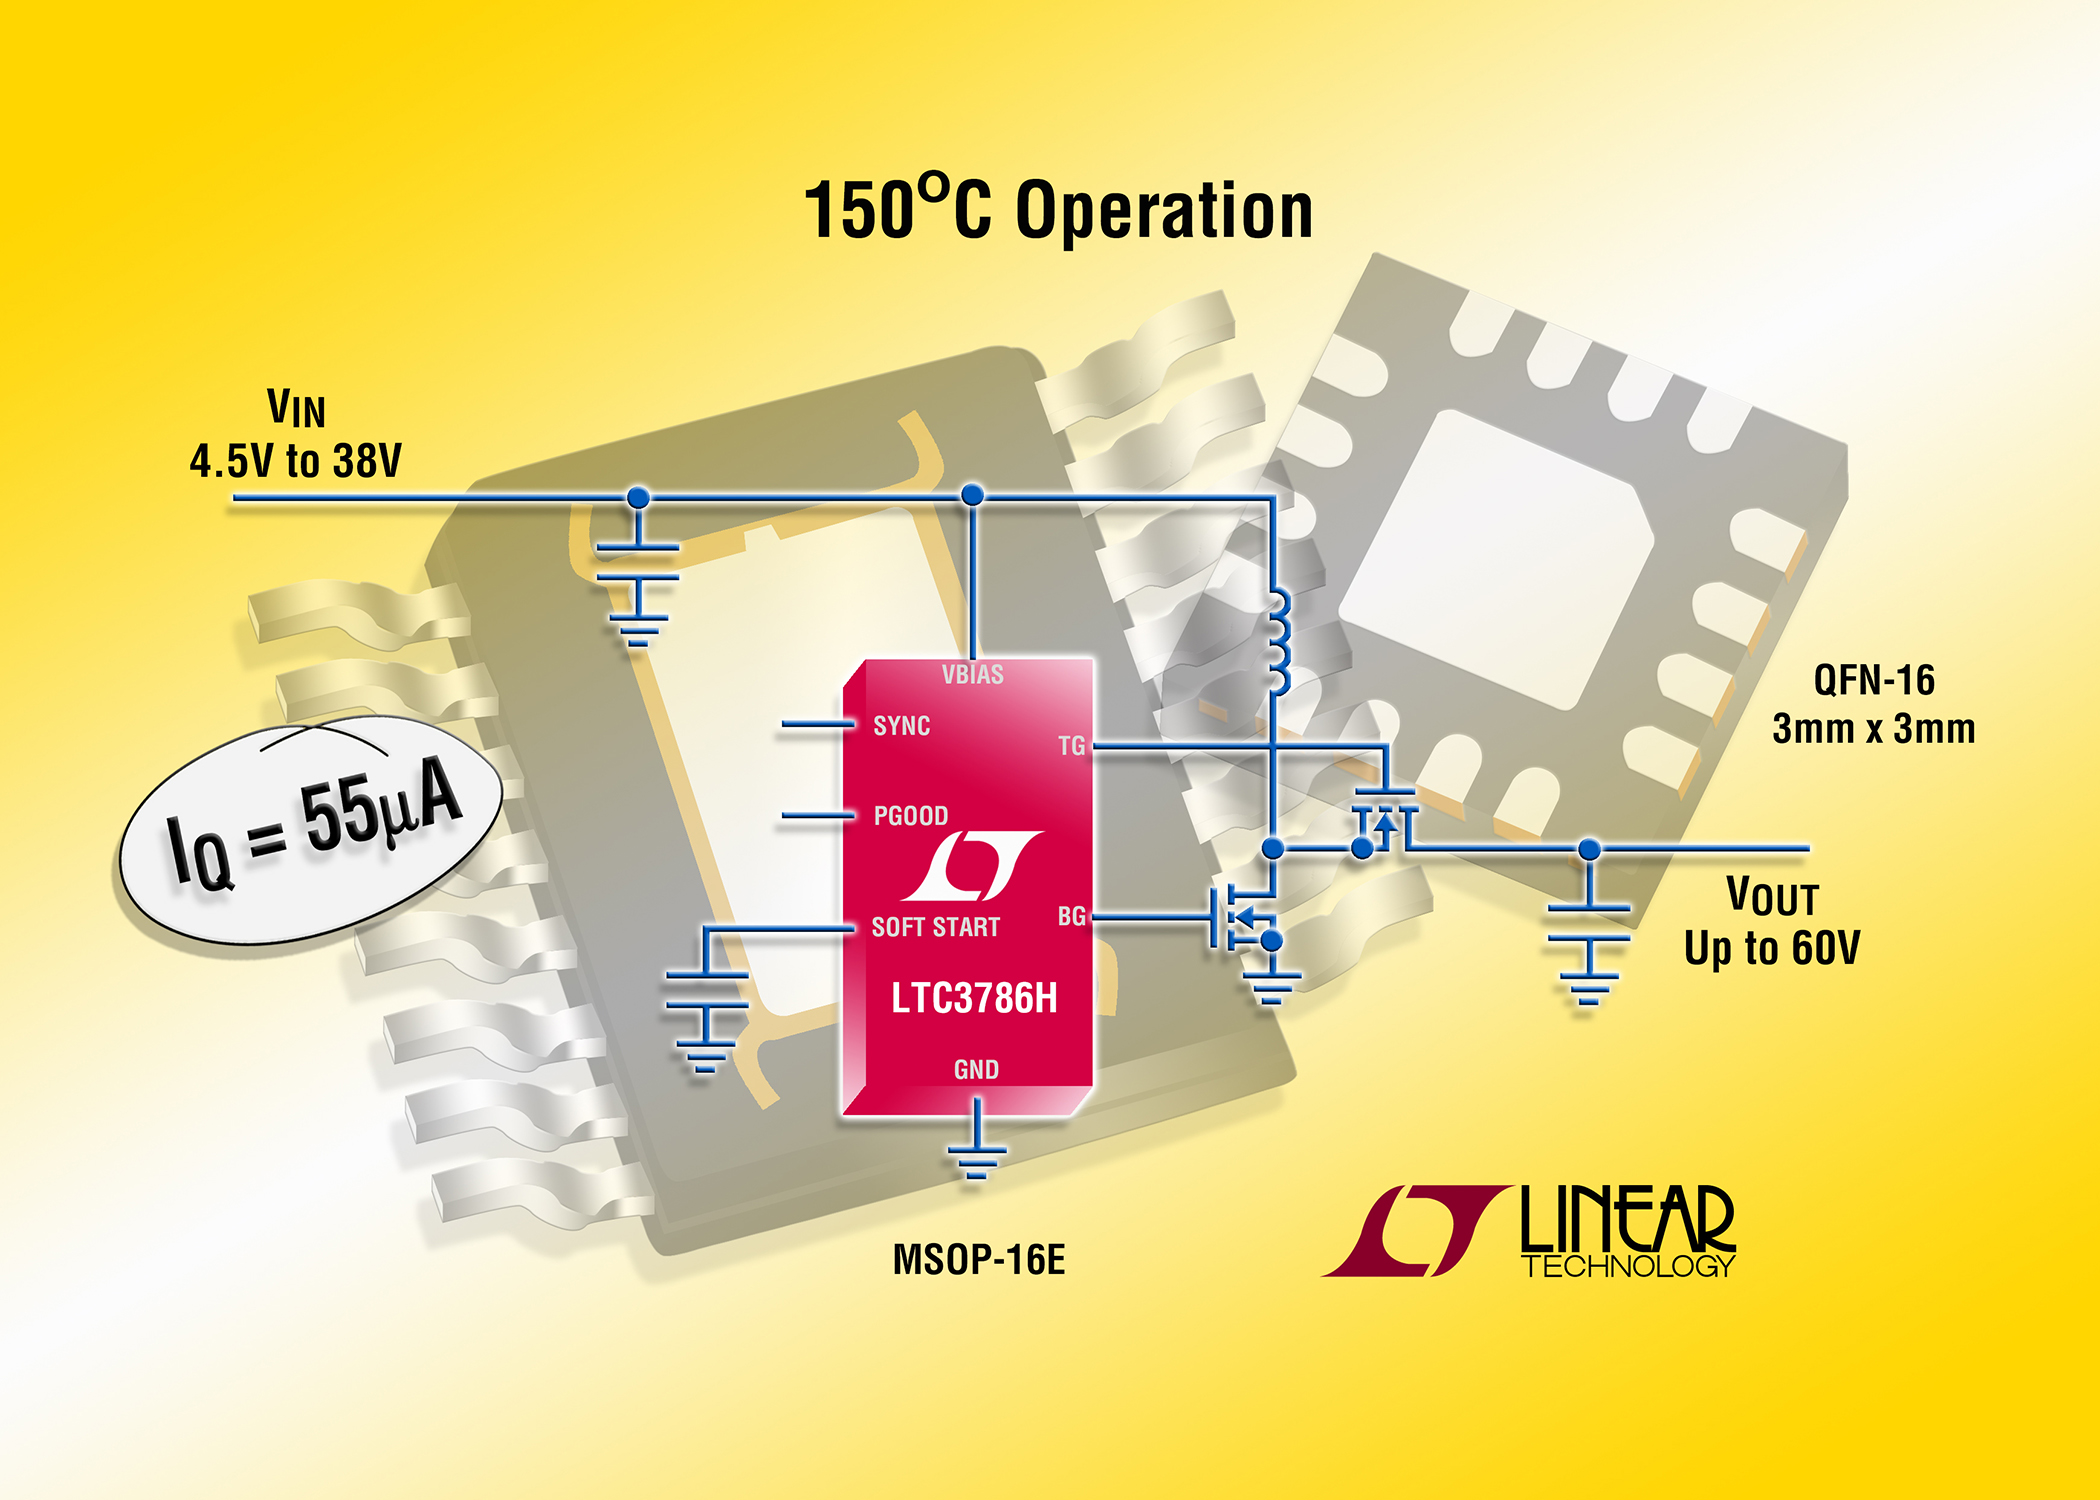 Single Inductor High Efficiency Synchronous Buck Boost Dc Controller Buckboost Led Driver Linear Technology Similar Articles